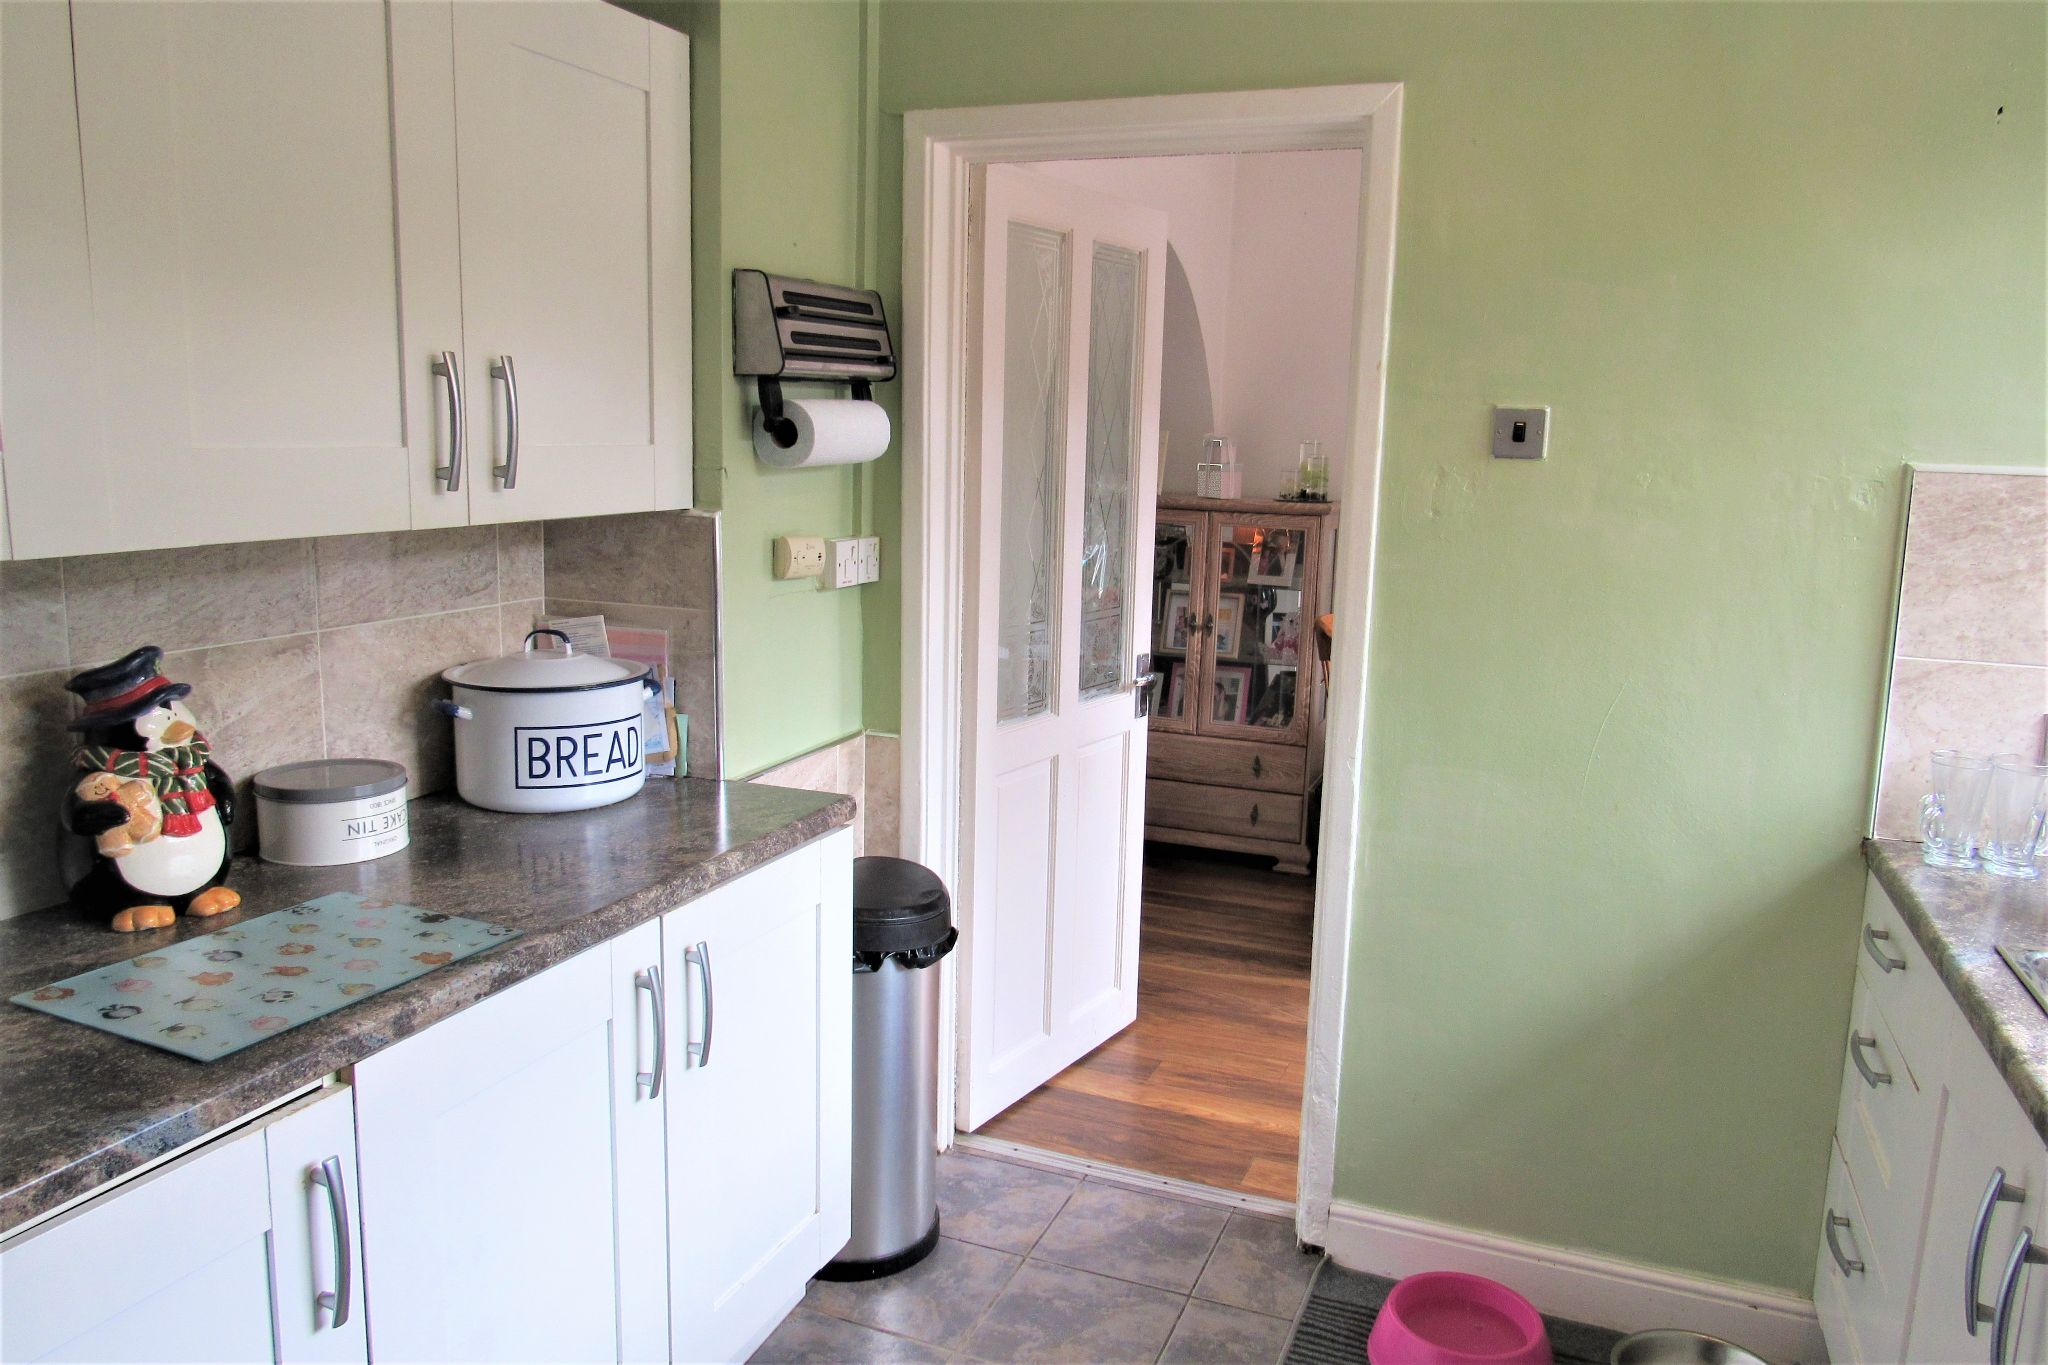 3 bedroom mid terraced house SSTC in Manchester - Photograph 8.